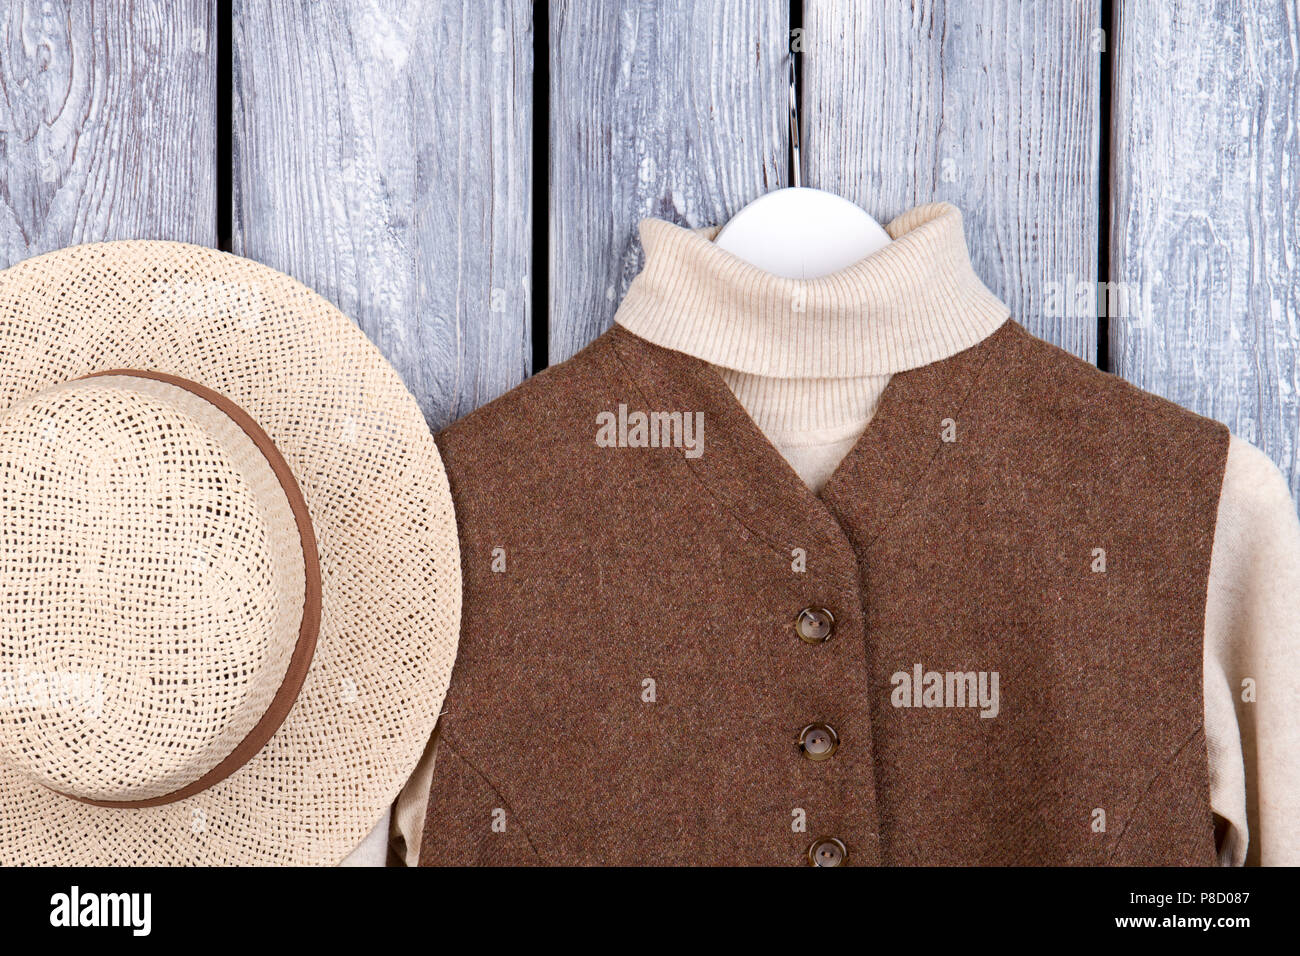 Top view straw and winter clothing. - Stock Image